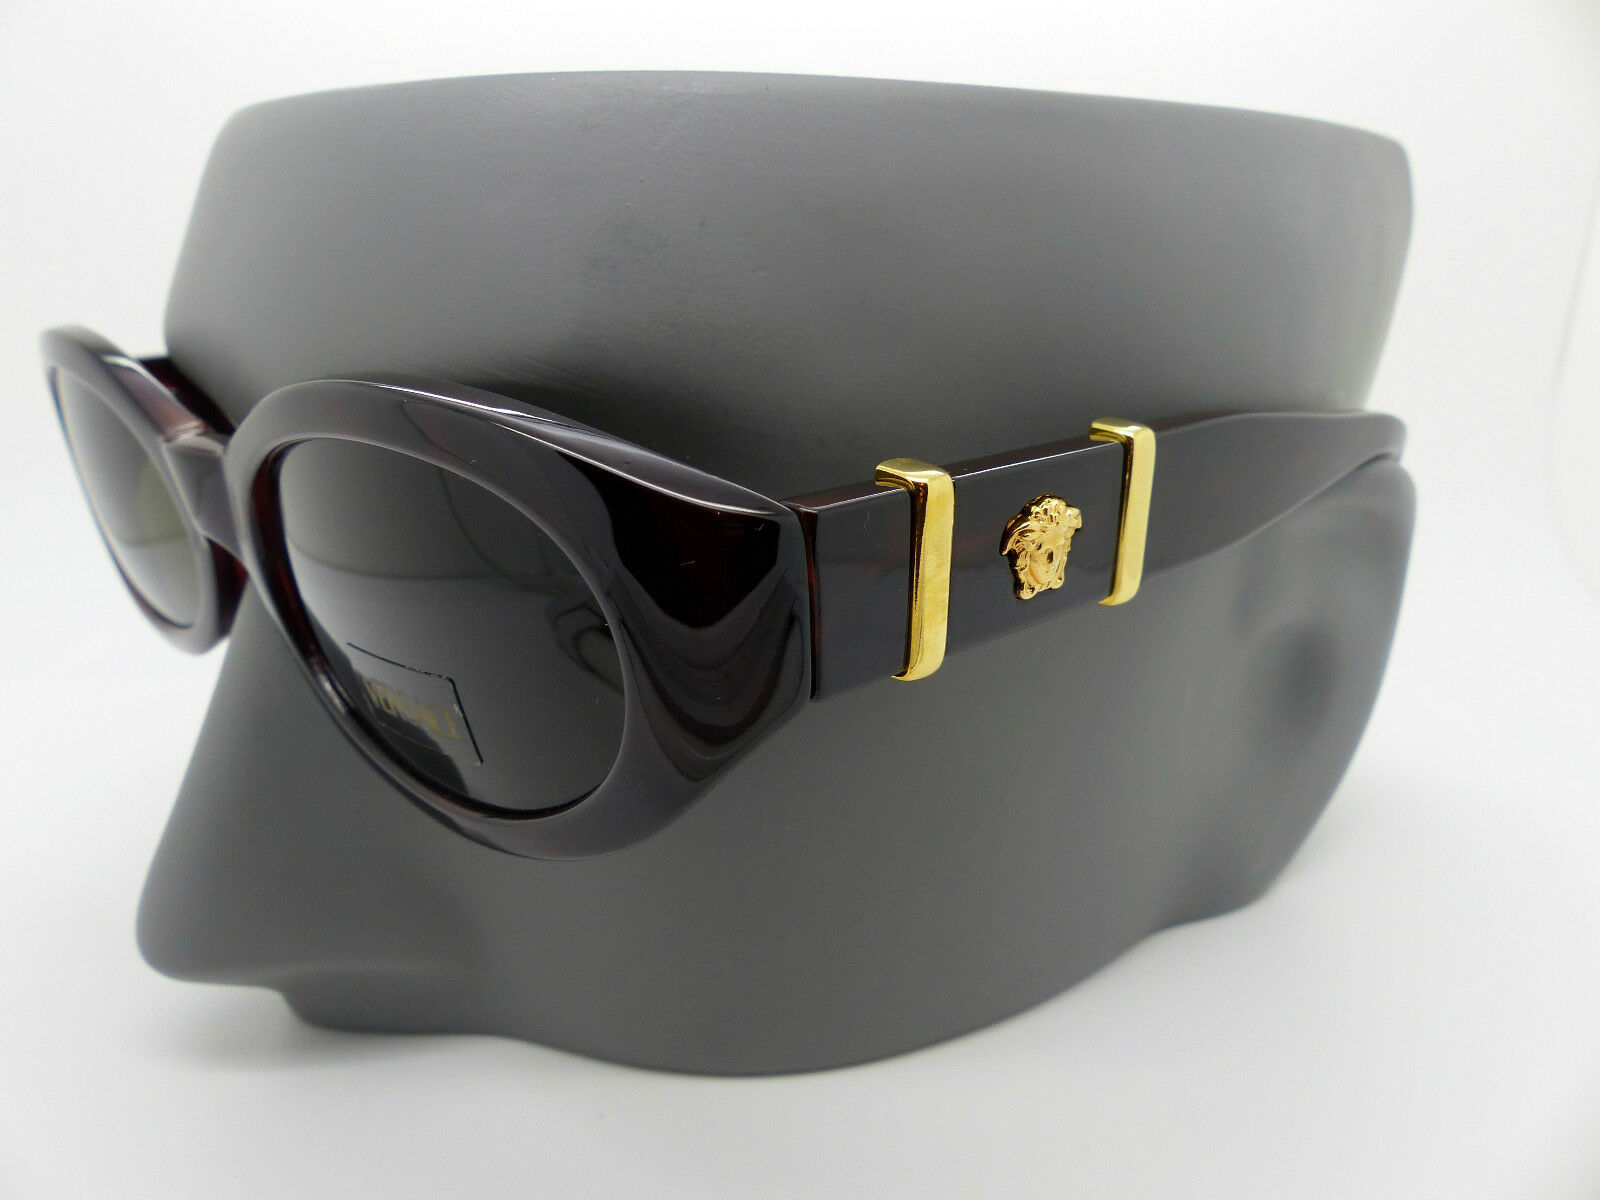 01d3ccbf97 Versace Sunglasses Mod. 292 A Col. 900 Vintage Genuine New Old Stock фото